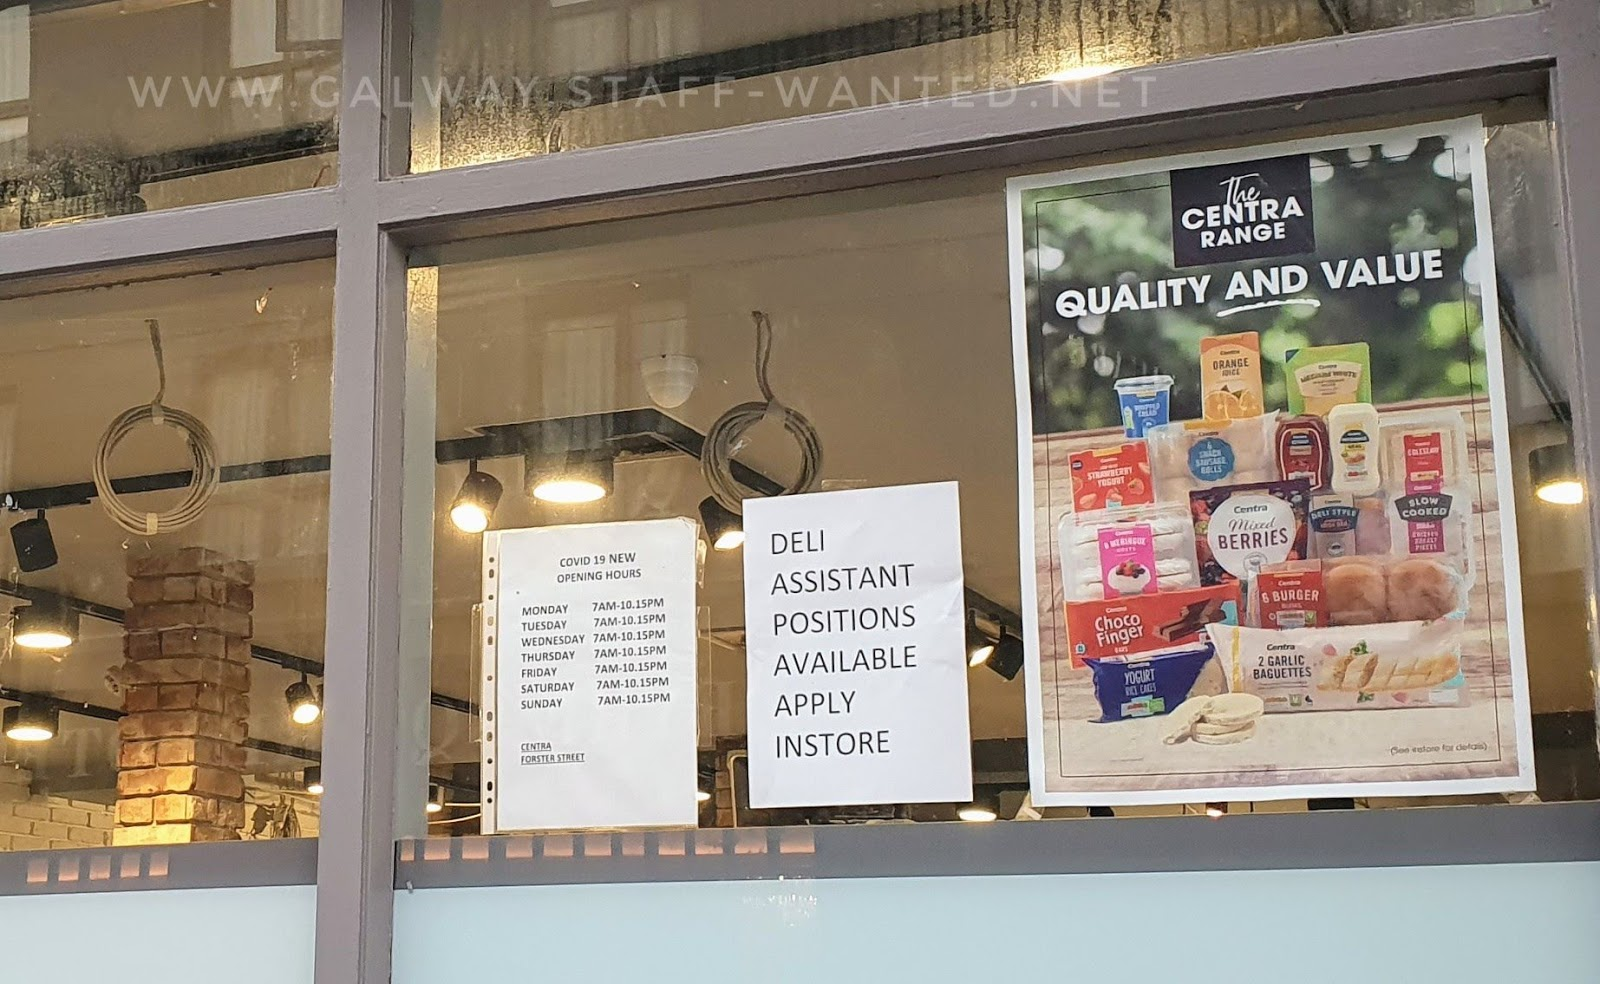 Deli assistant job advert, in between sign with opening hours for Forster Street Centra, and an advertising sign about The Centra Range - quality and value